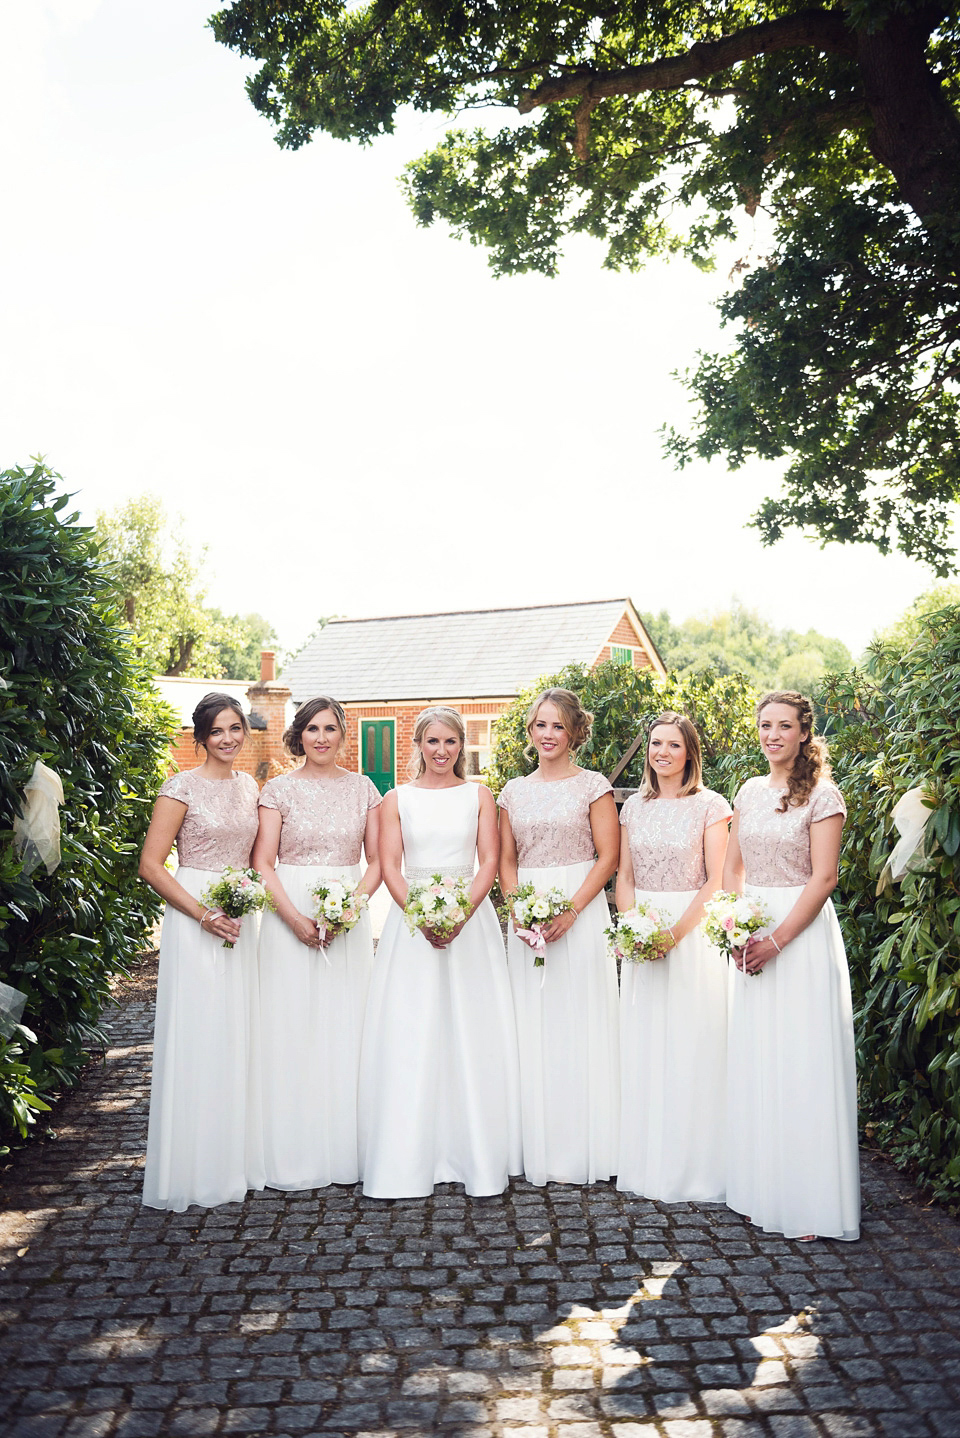 A Jesus Peiro Gown for a Glamorous and Romantic English Country Garden Wedding (Weddings )